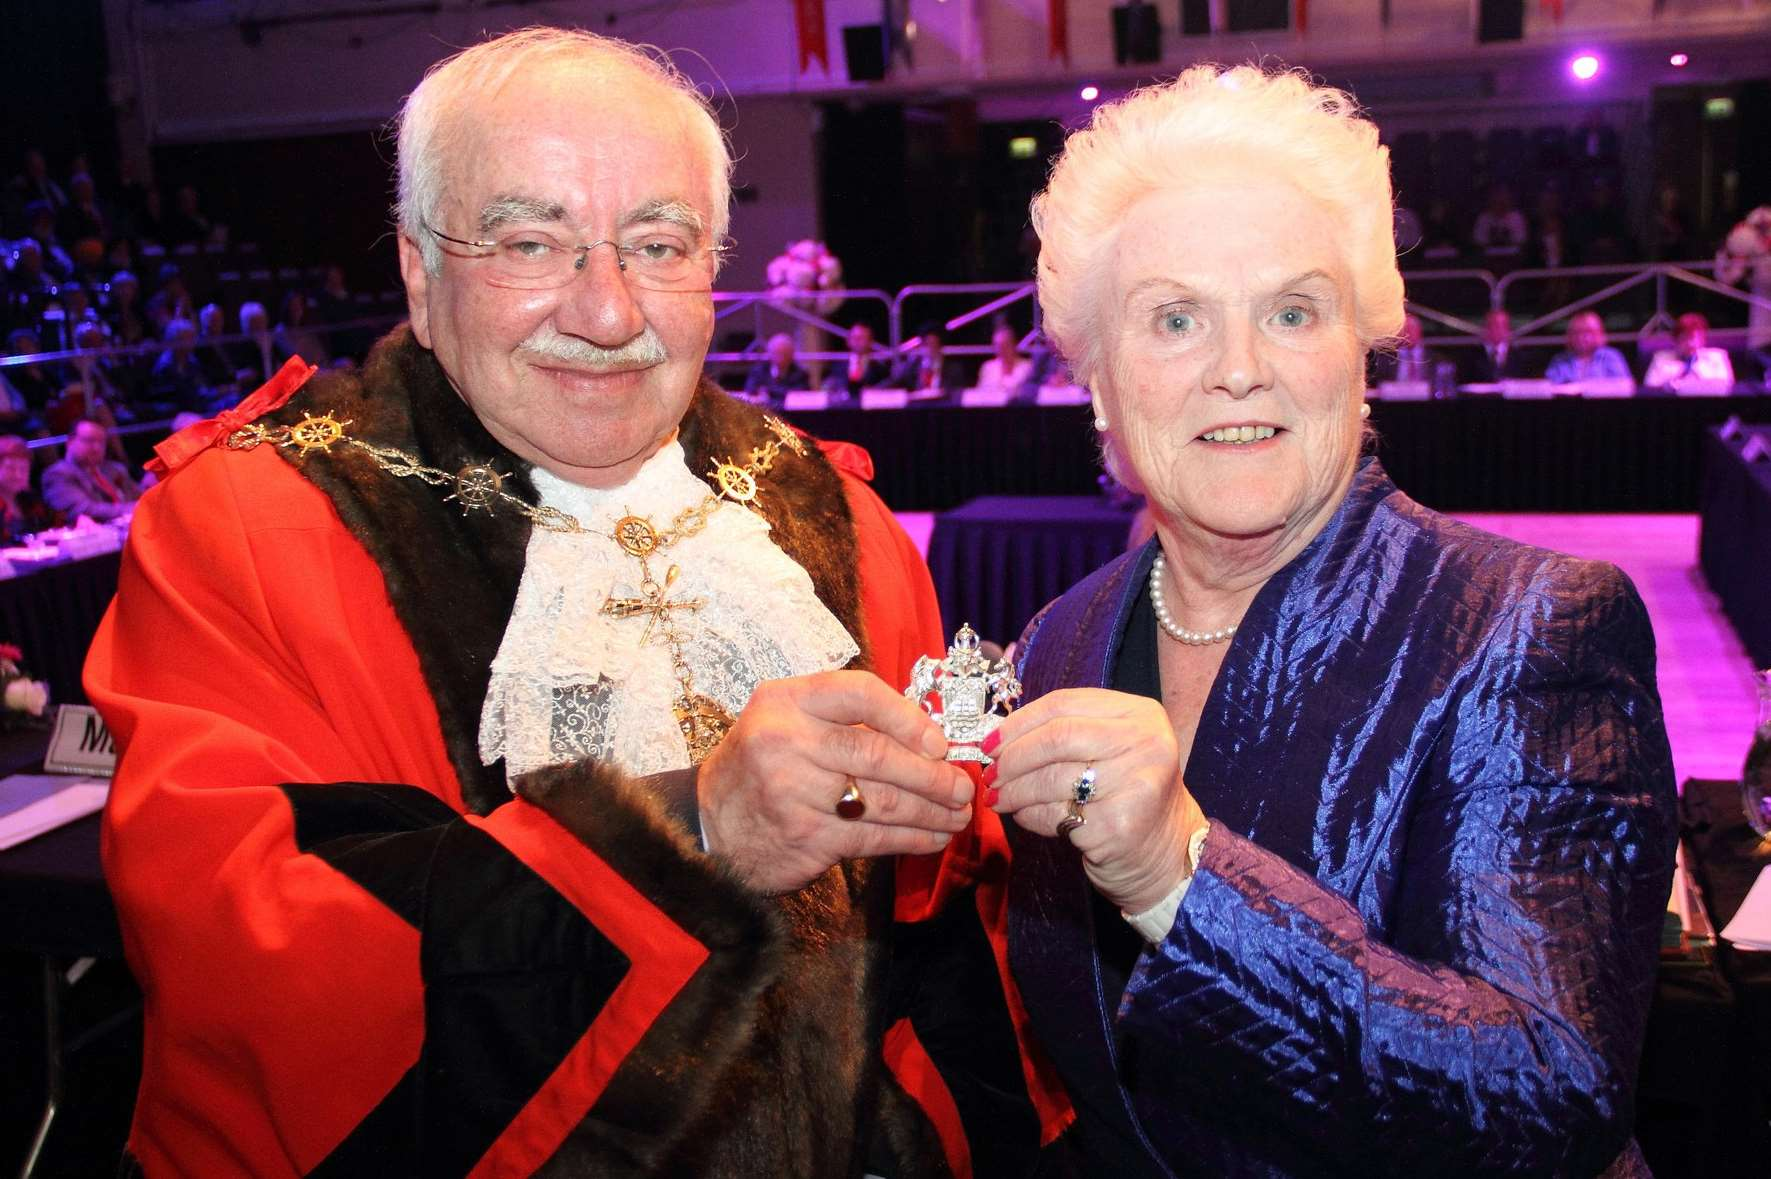 Cllr Harold Craske is the new Mayor of Gravesham, taking over from Cllr Greta Goatley. Picture: Gravesham Borough Council